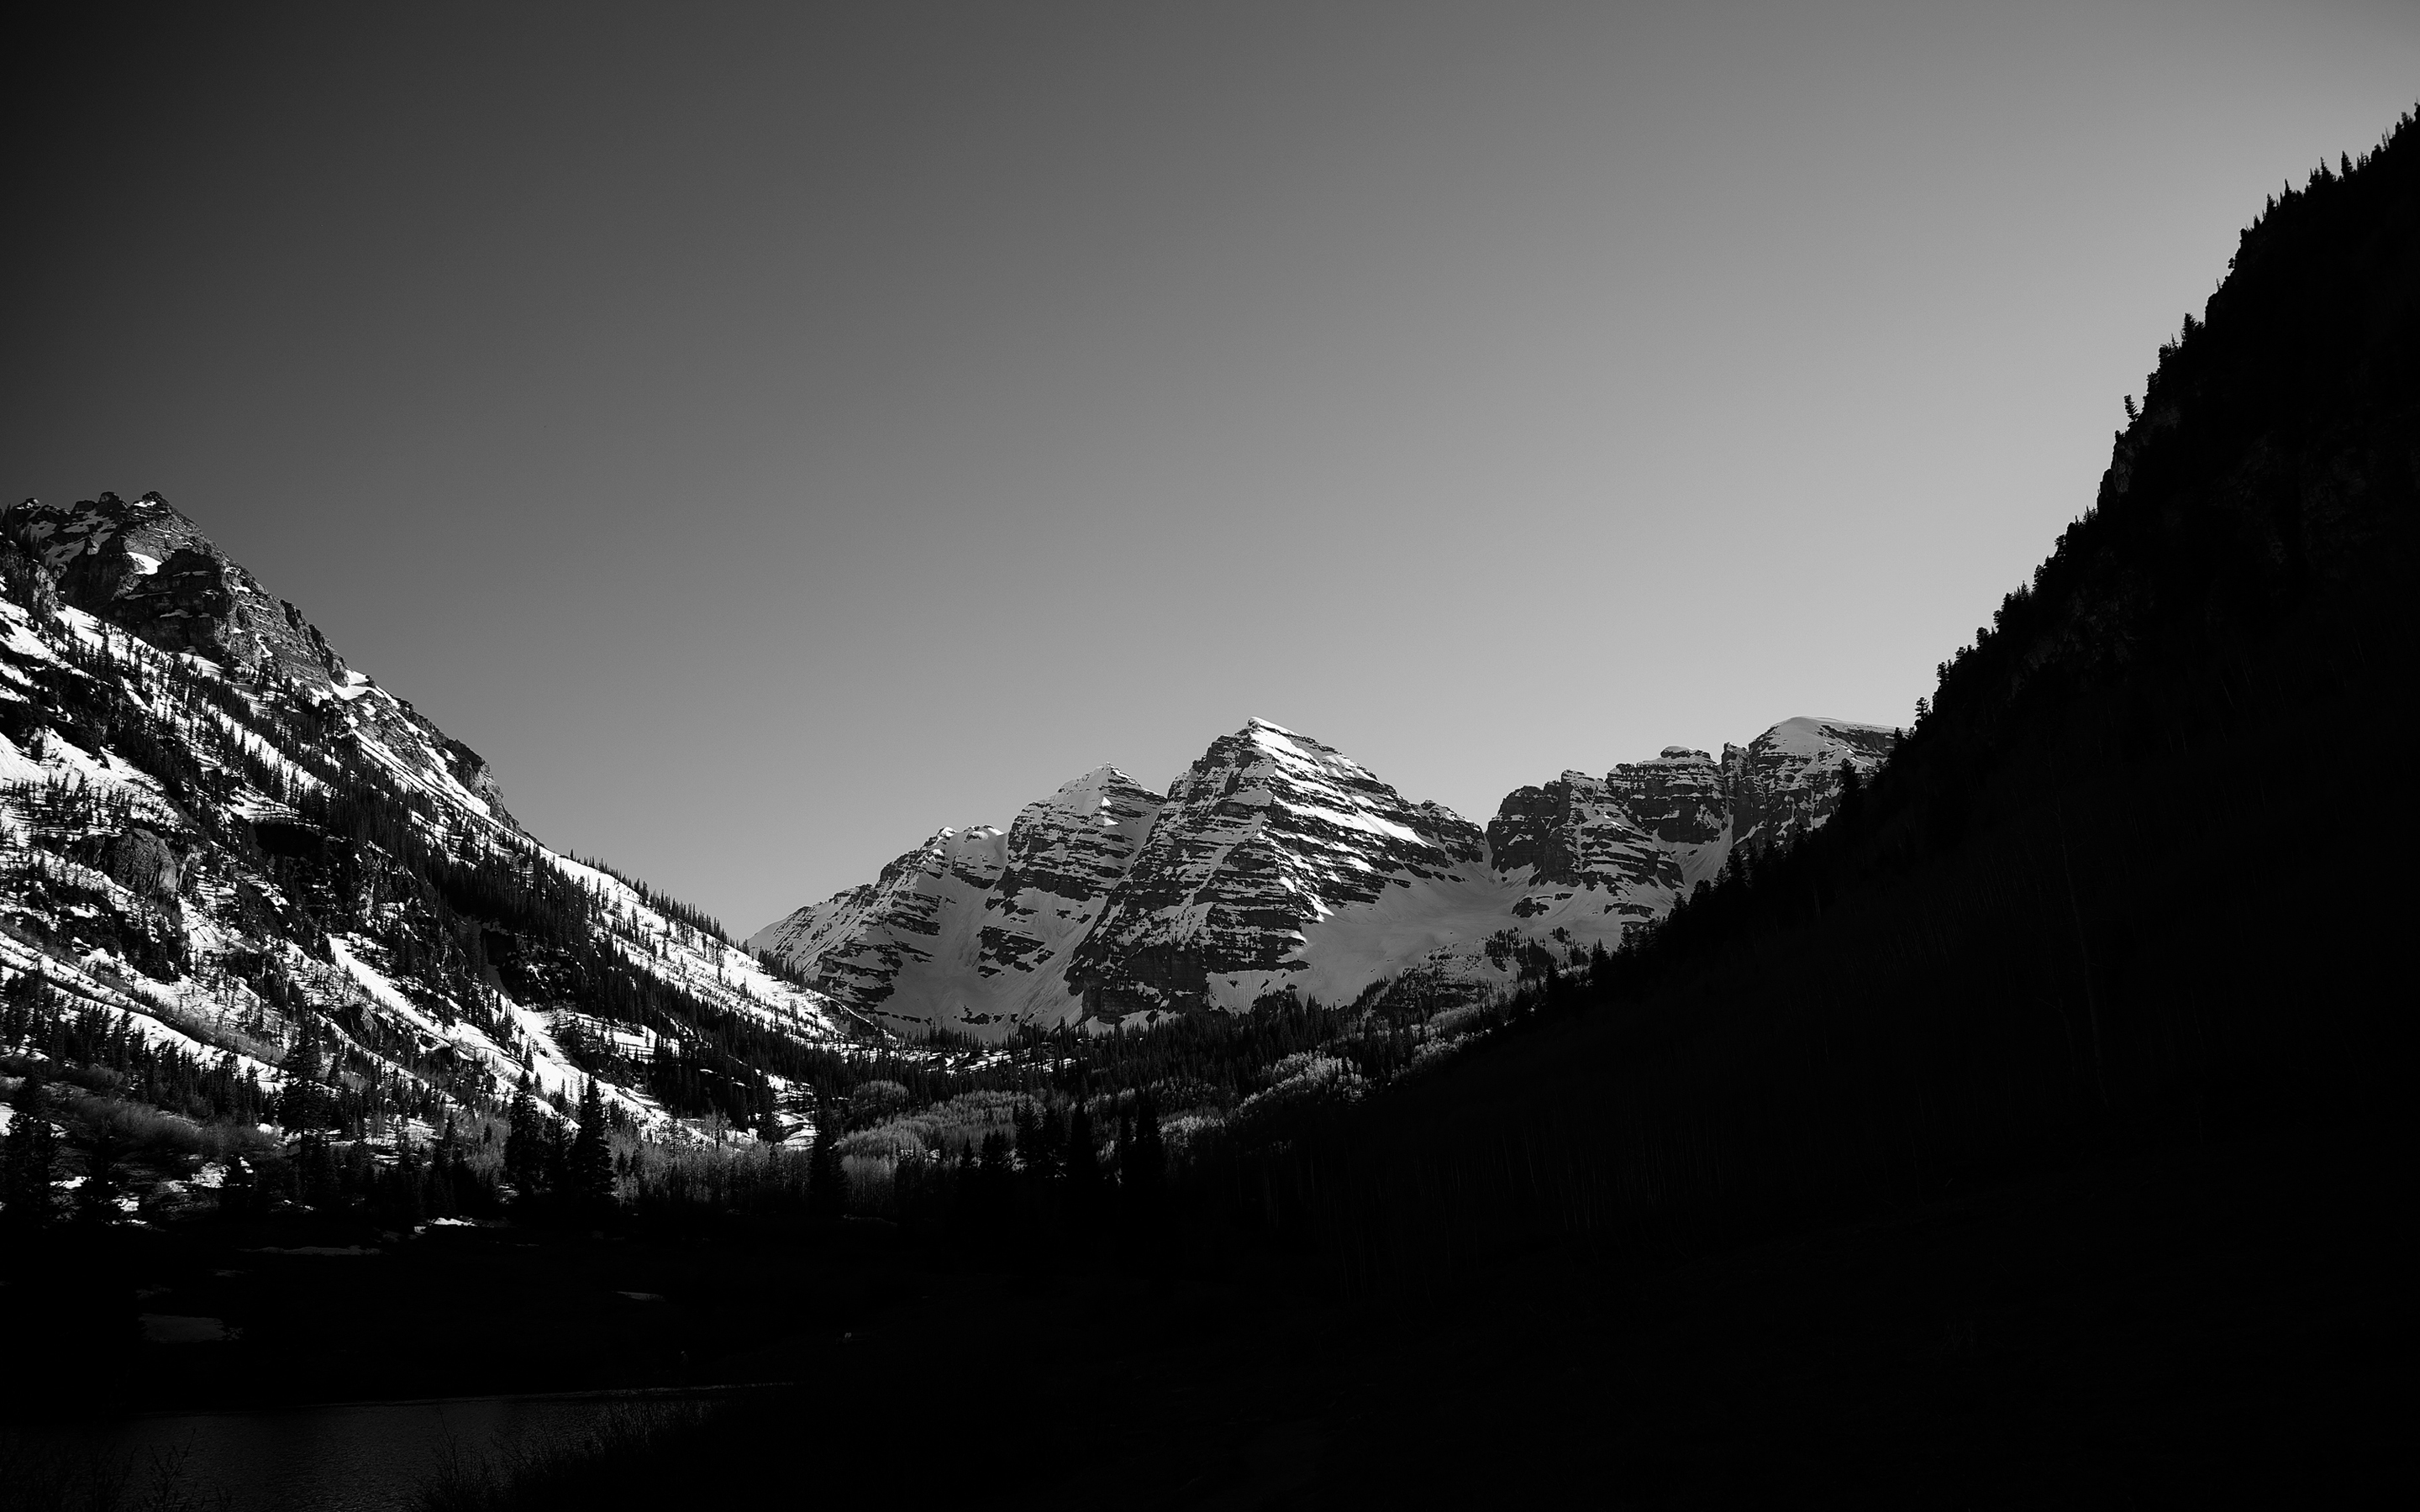 Monochrome forest mountains scenery